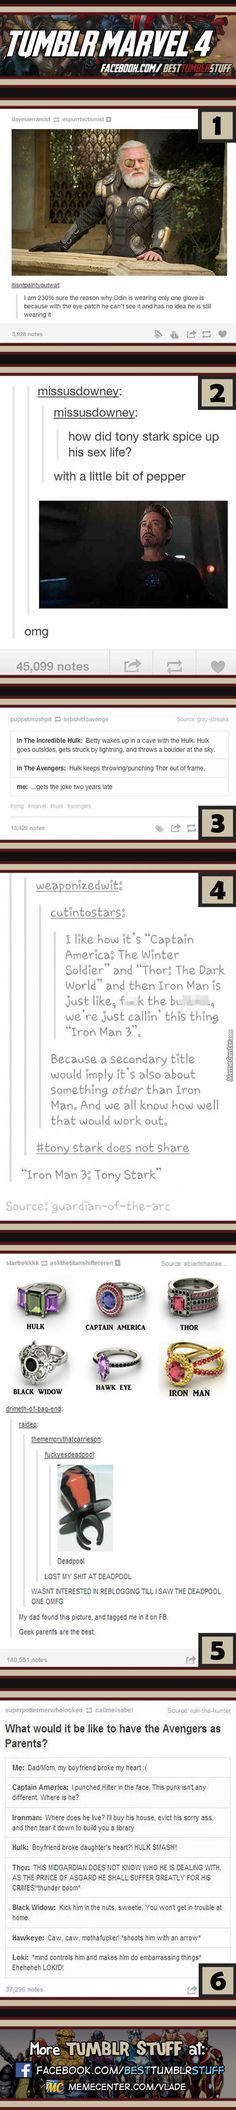 Tumblr Marvel #4. The Thor and Hulk joke is hilarious...how'd I get that two years late?!